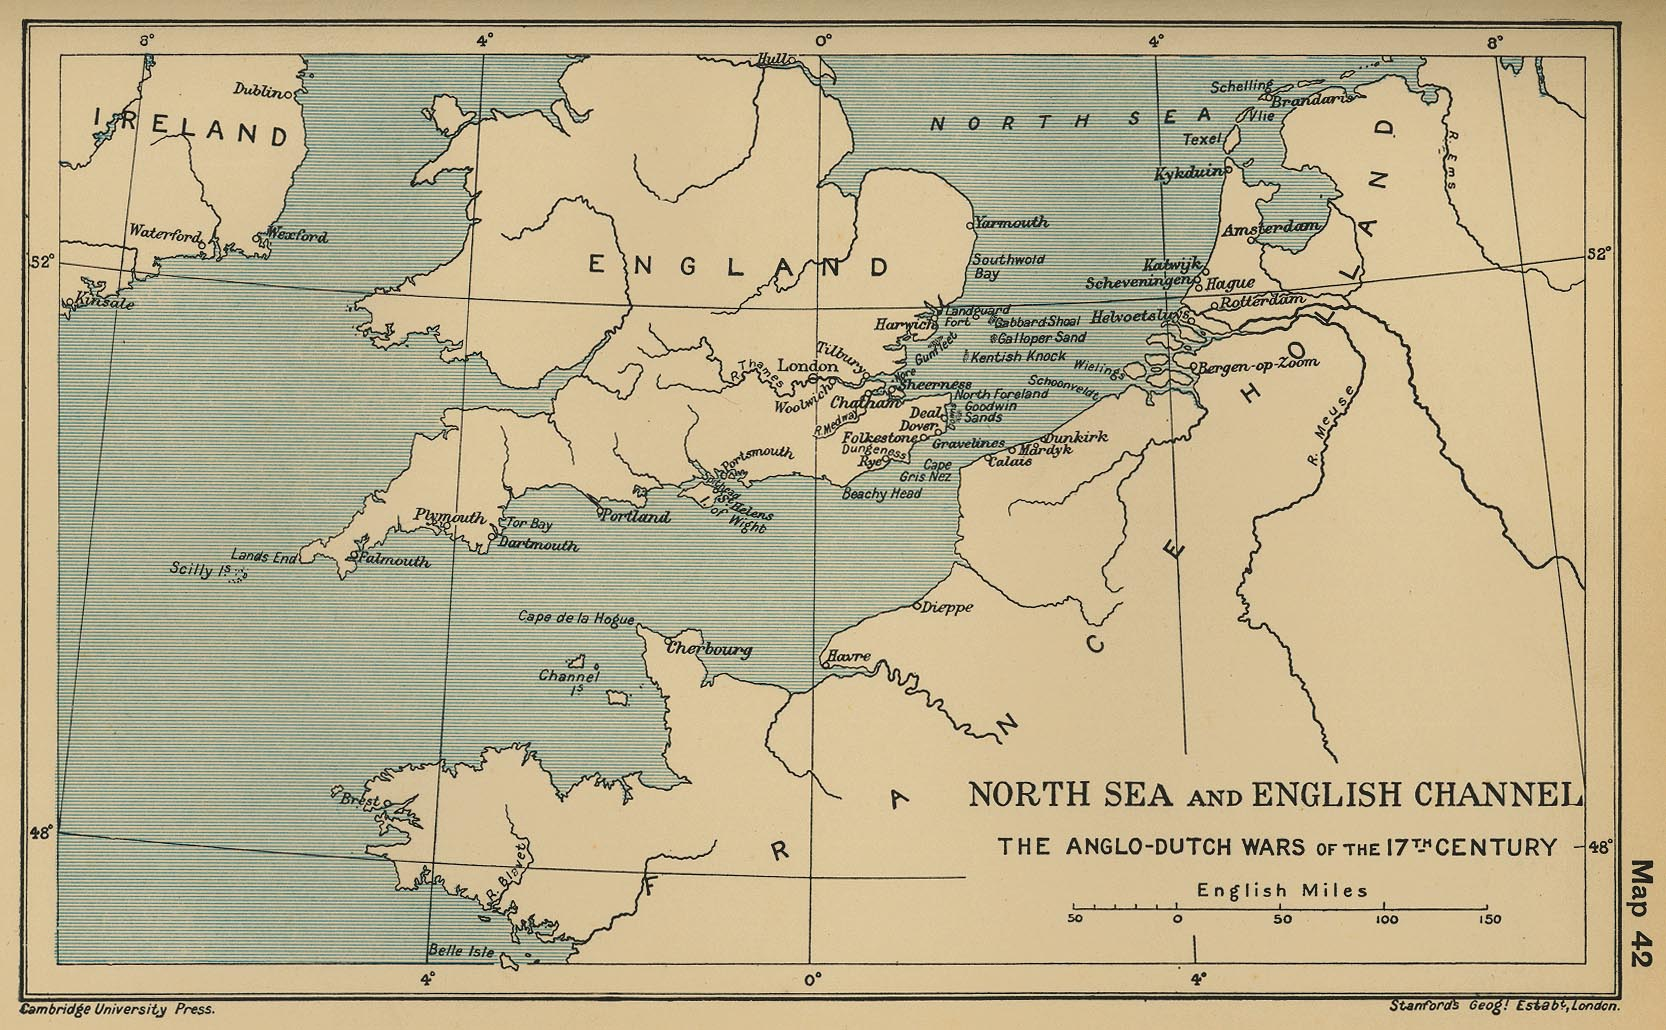 English Channel AngloDutch Wars 17th Century CosmoLearning History